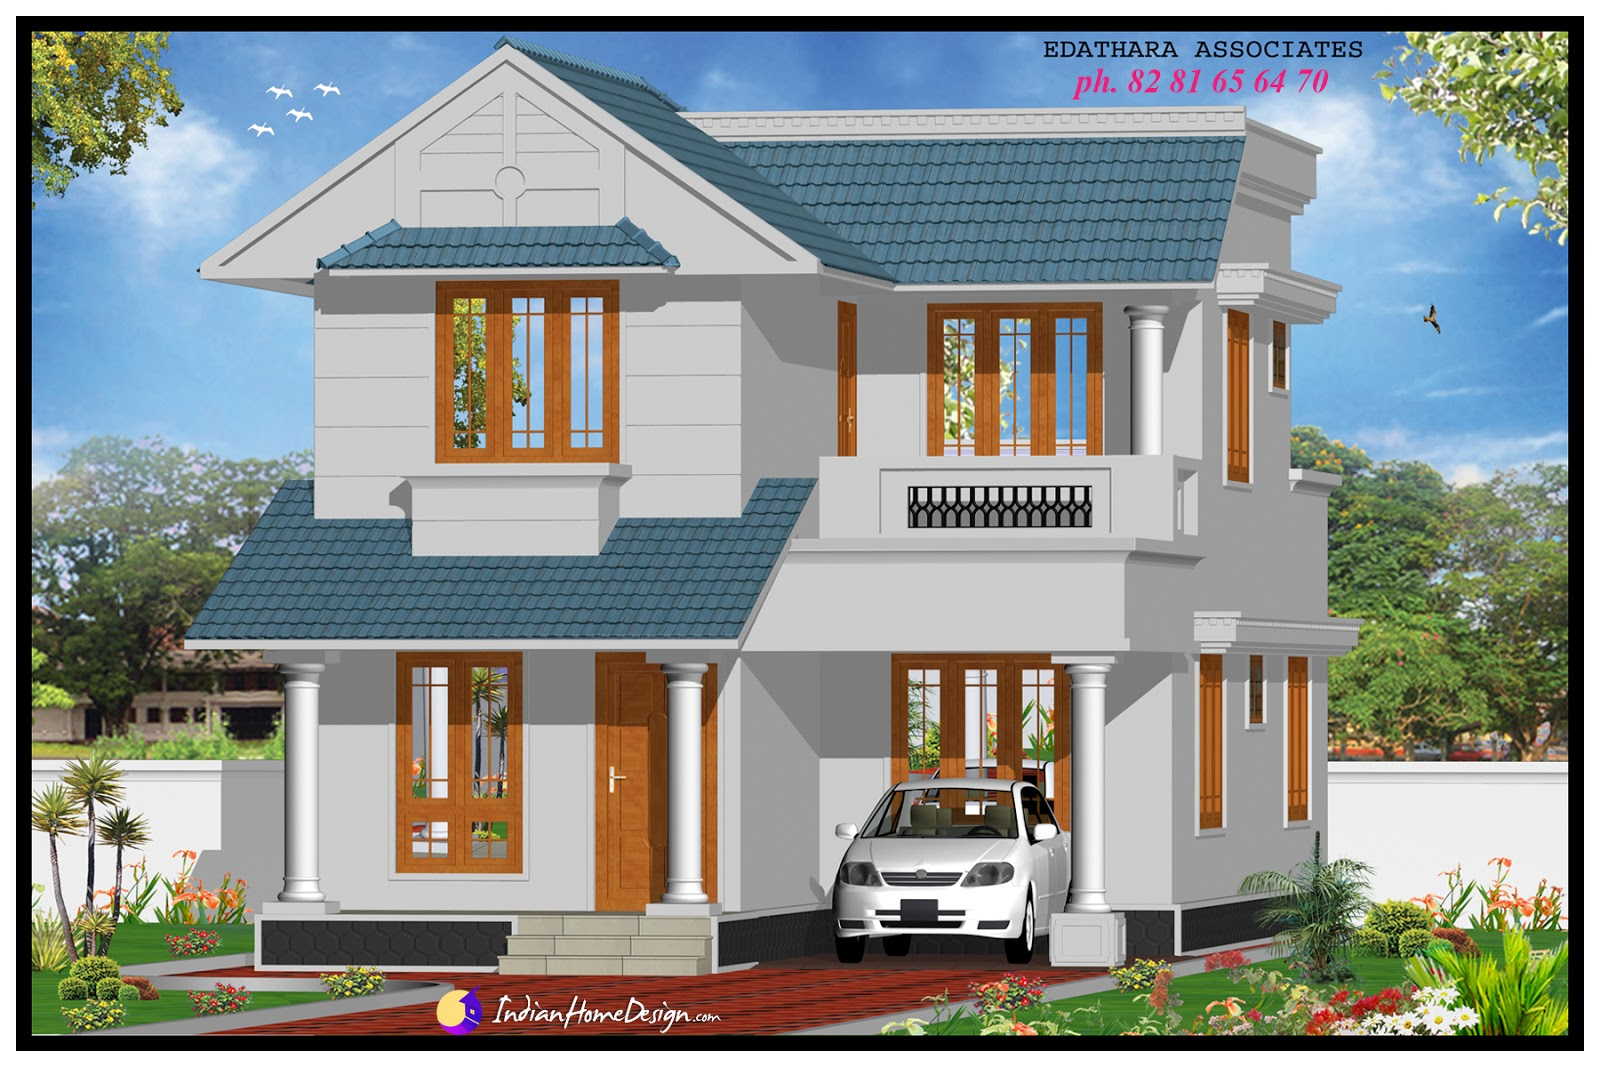 home design indian home design free house plans naksha design 3d